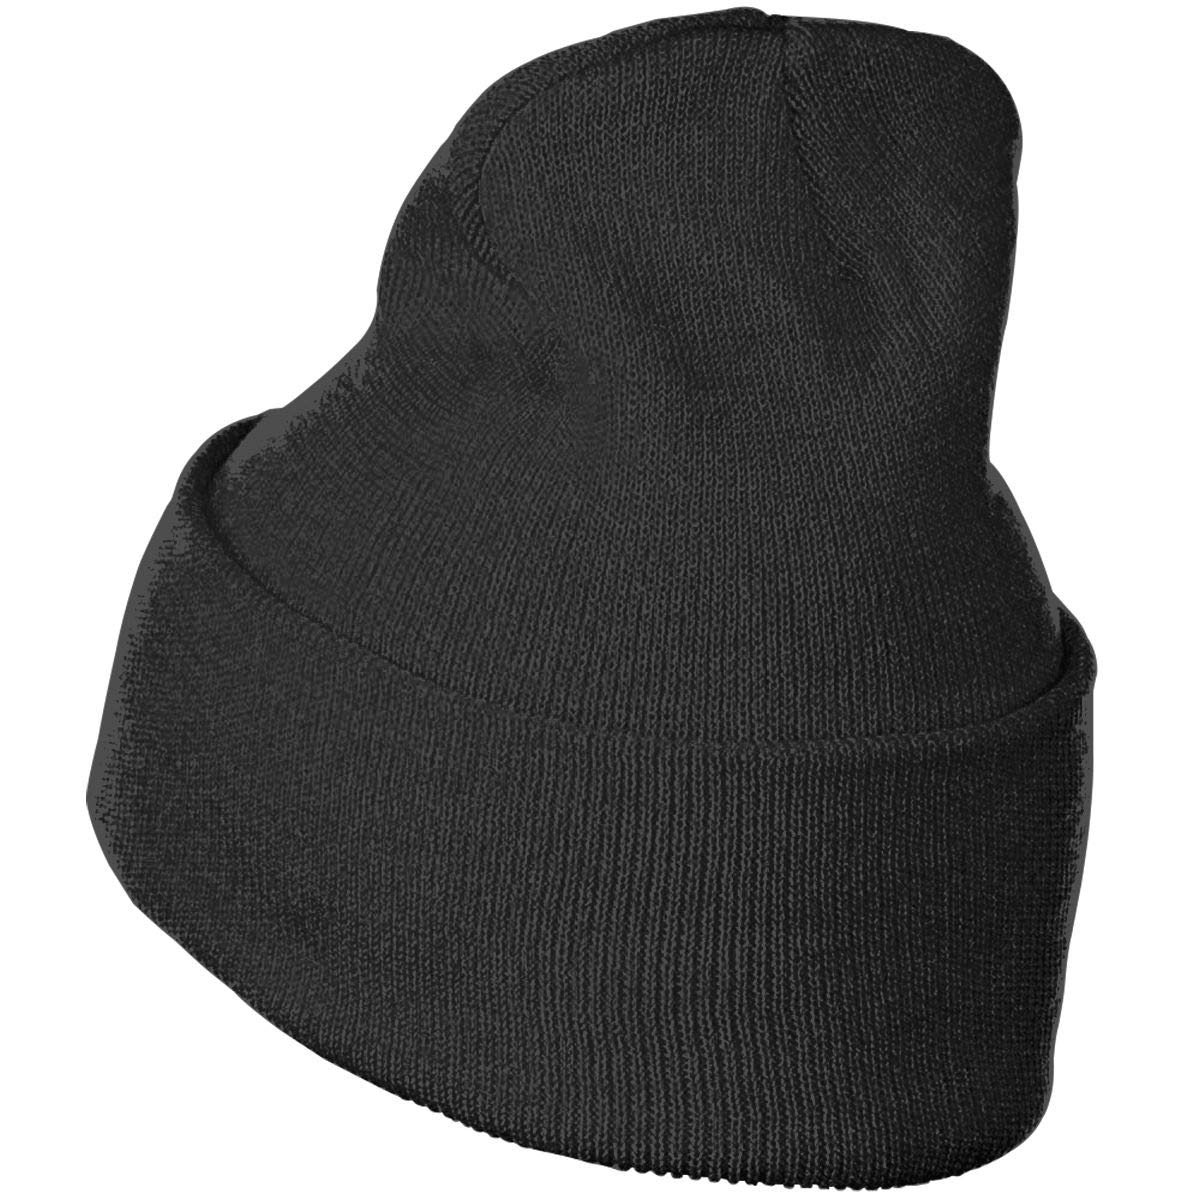 White-Shark Warm Knit Winter Solid Beanie Hat Unisex Skull Cap